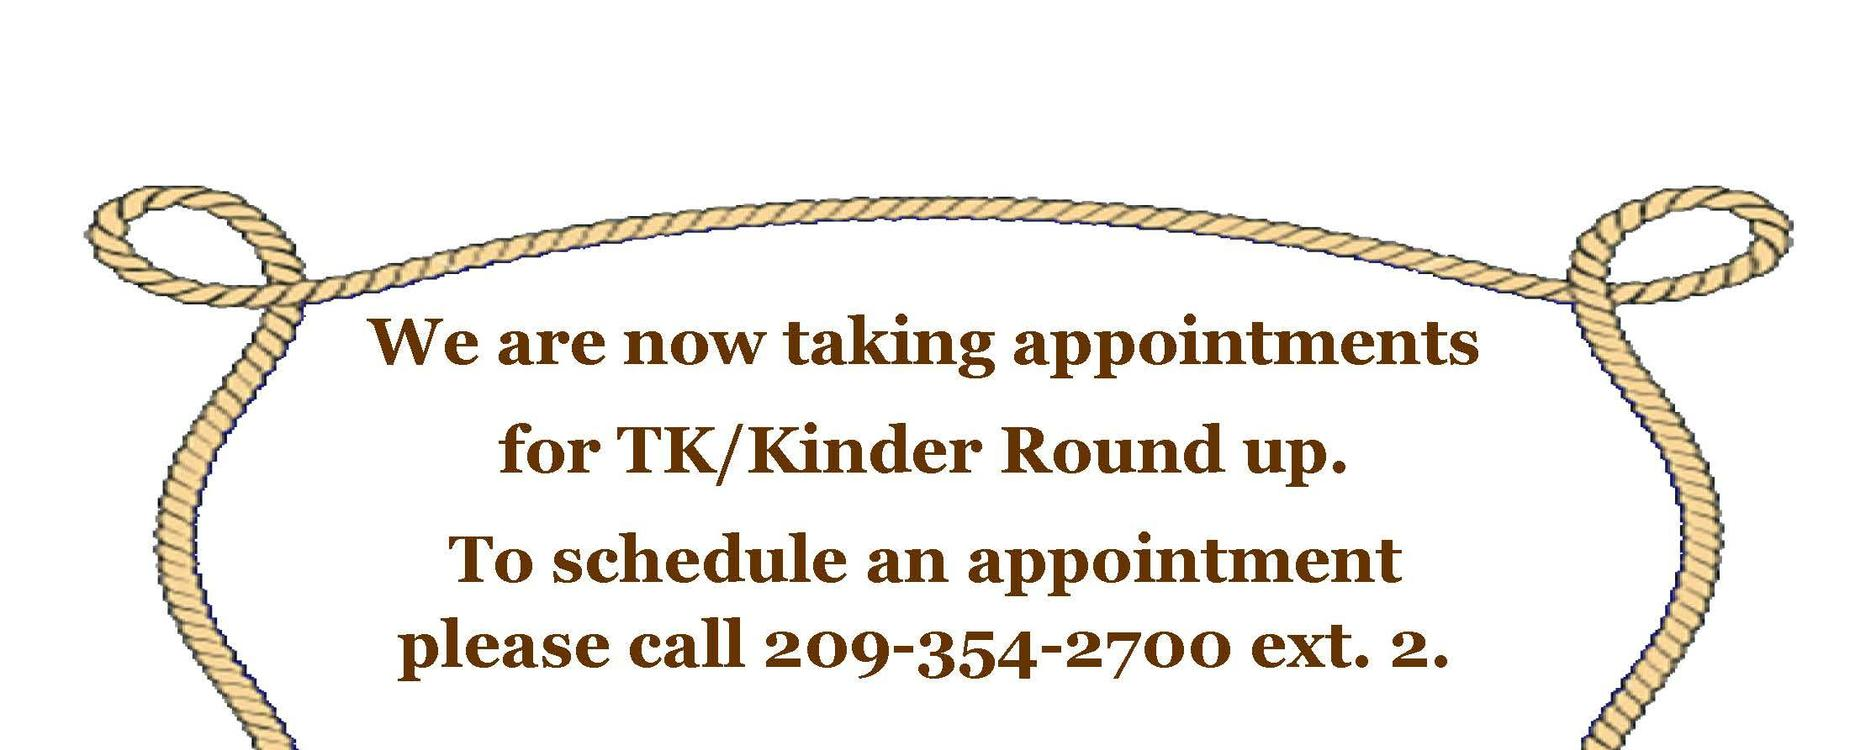 TK and Kindergarten Round Up Appointments Available now